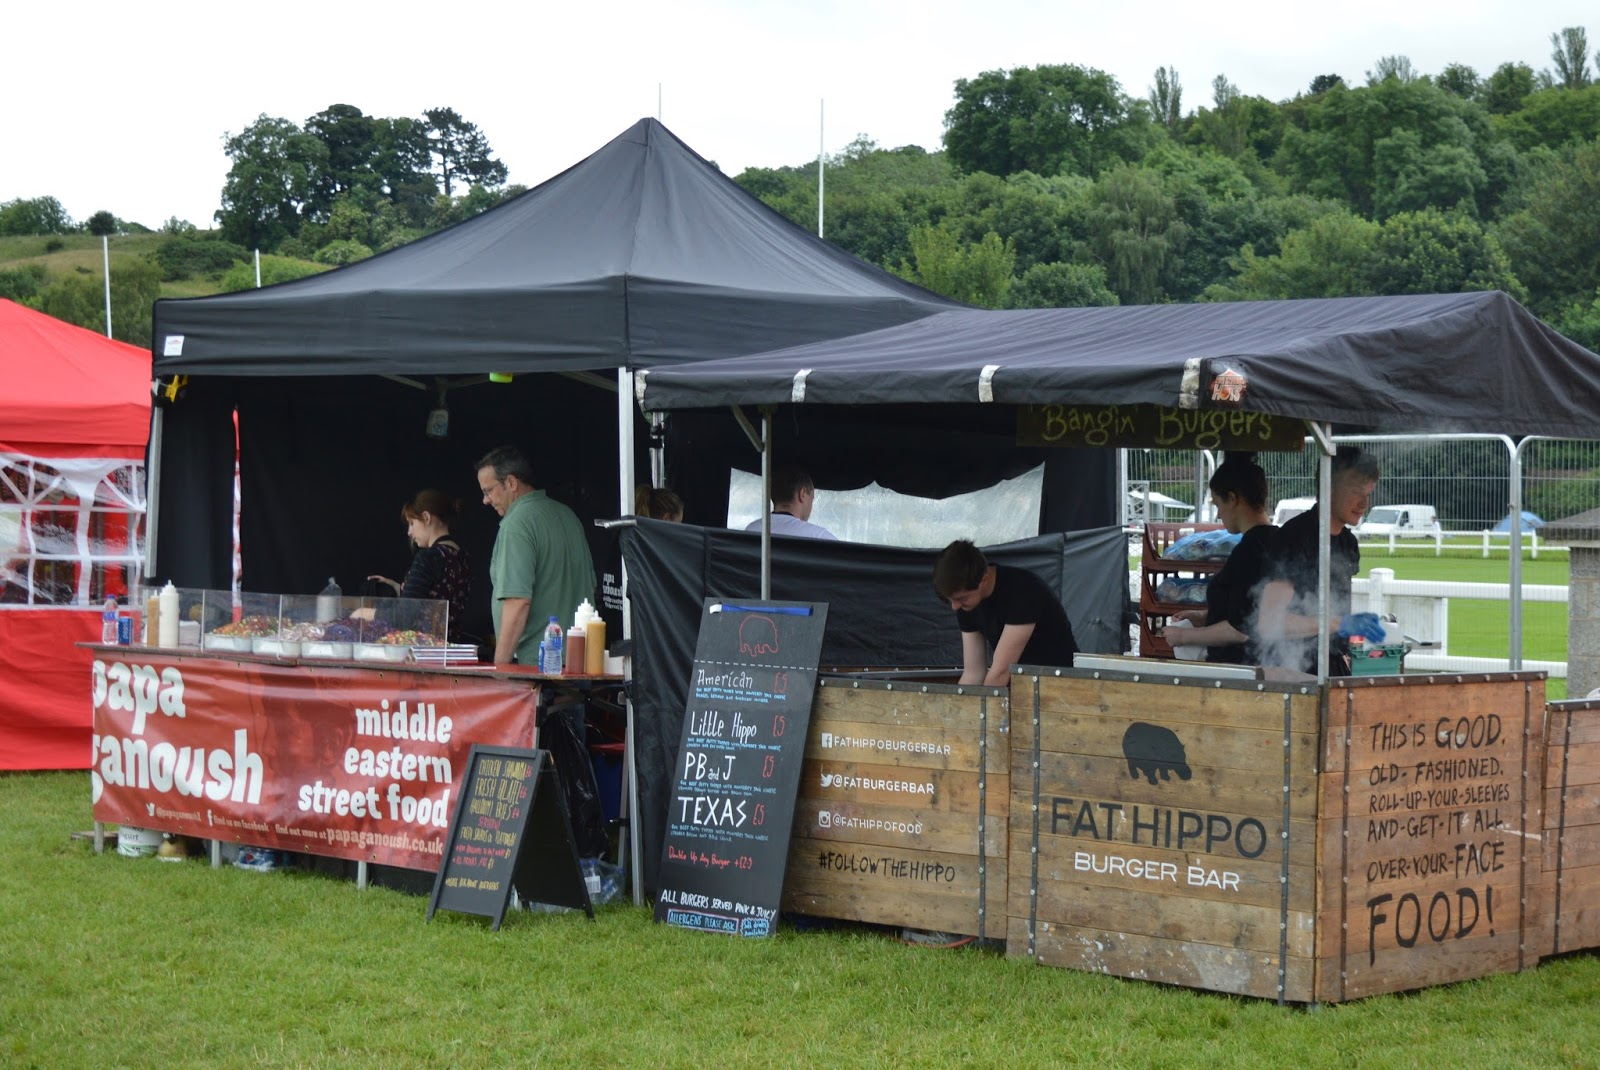 Corbridge Festival 2016 - A Review - Papa Ganoush and Fat Hippo